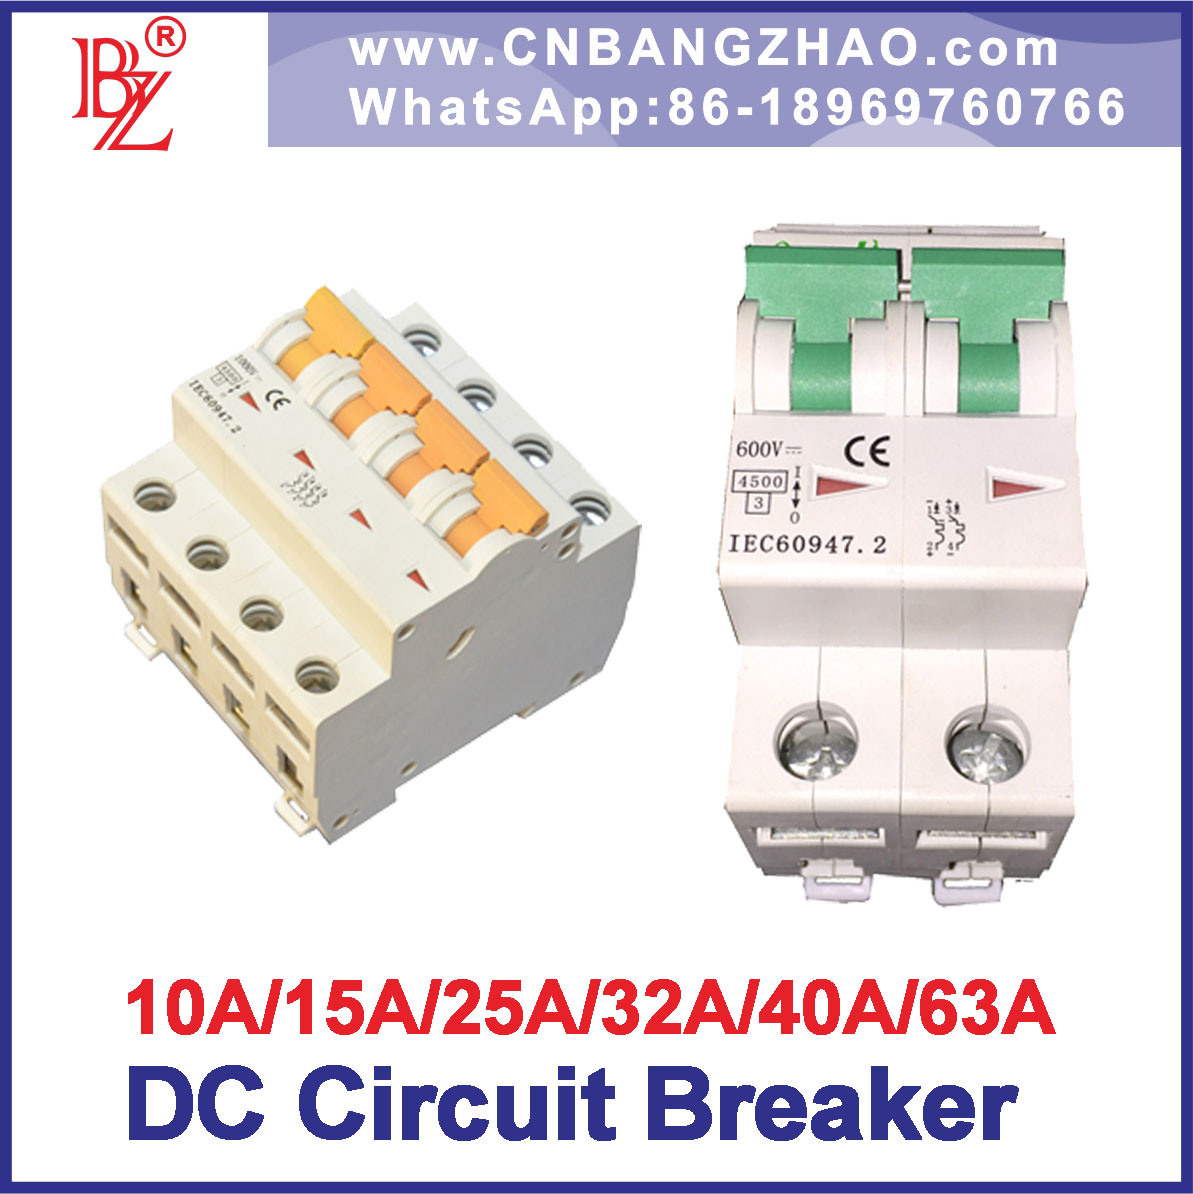 10a Circuit Breaker Diagram Great Installation Of Wiring A Box China High Voltage 1000v Dc To 63a Rh Bangzhao En Made In Com Parts